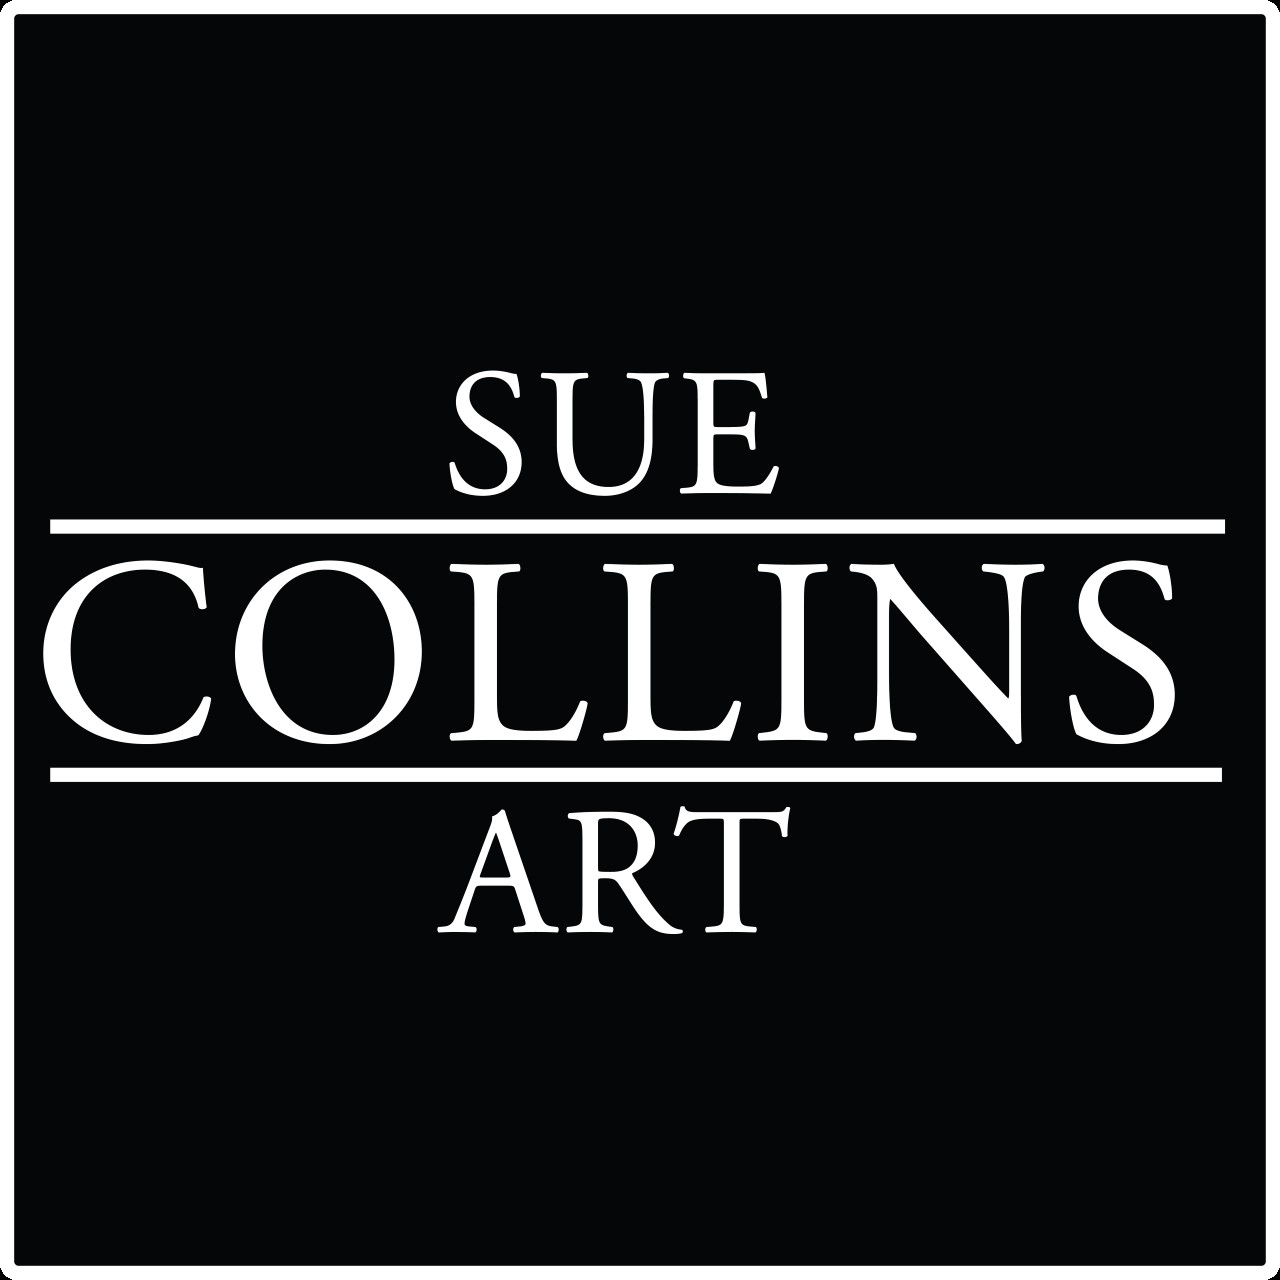 Sue Collins Art